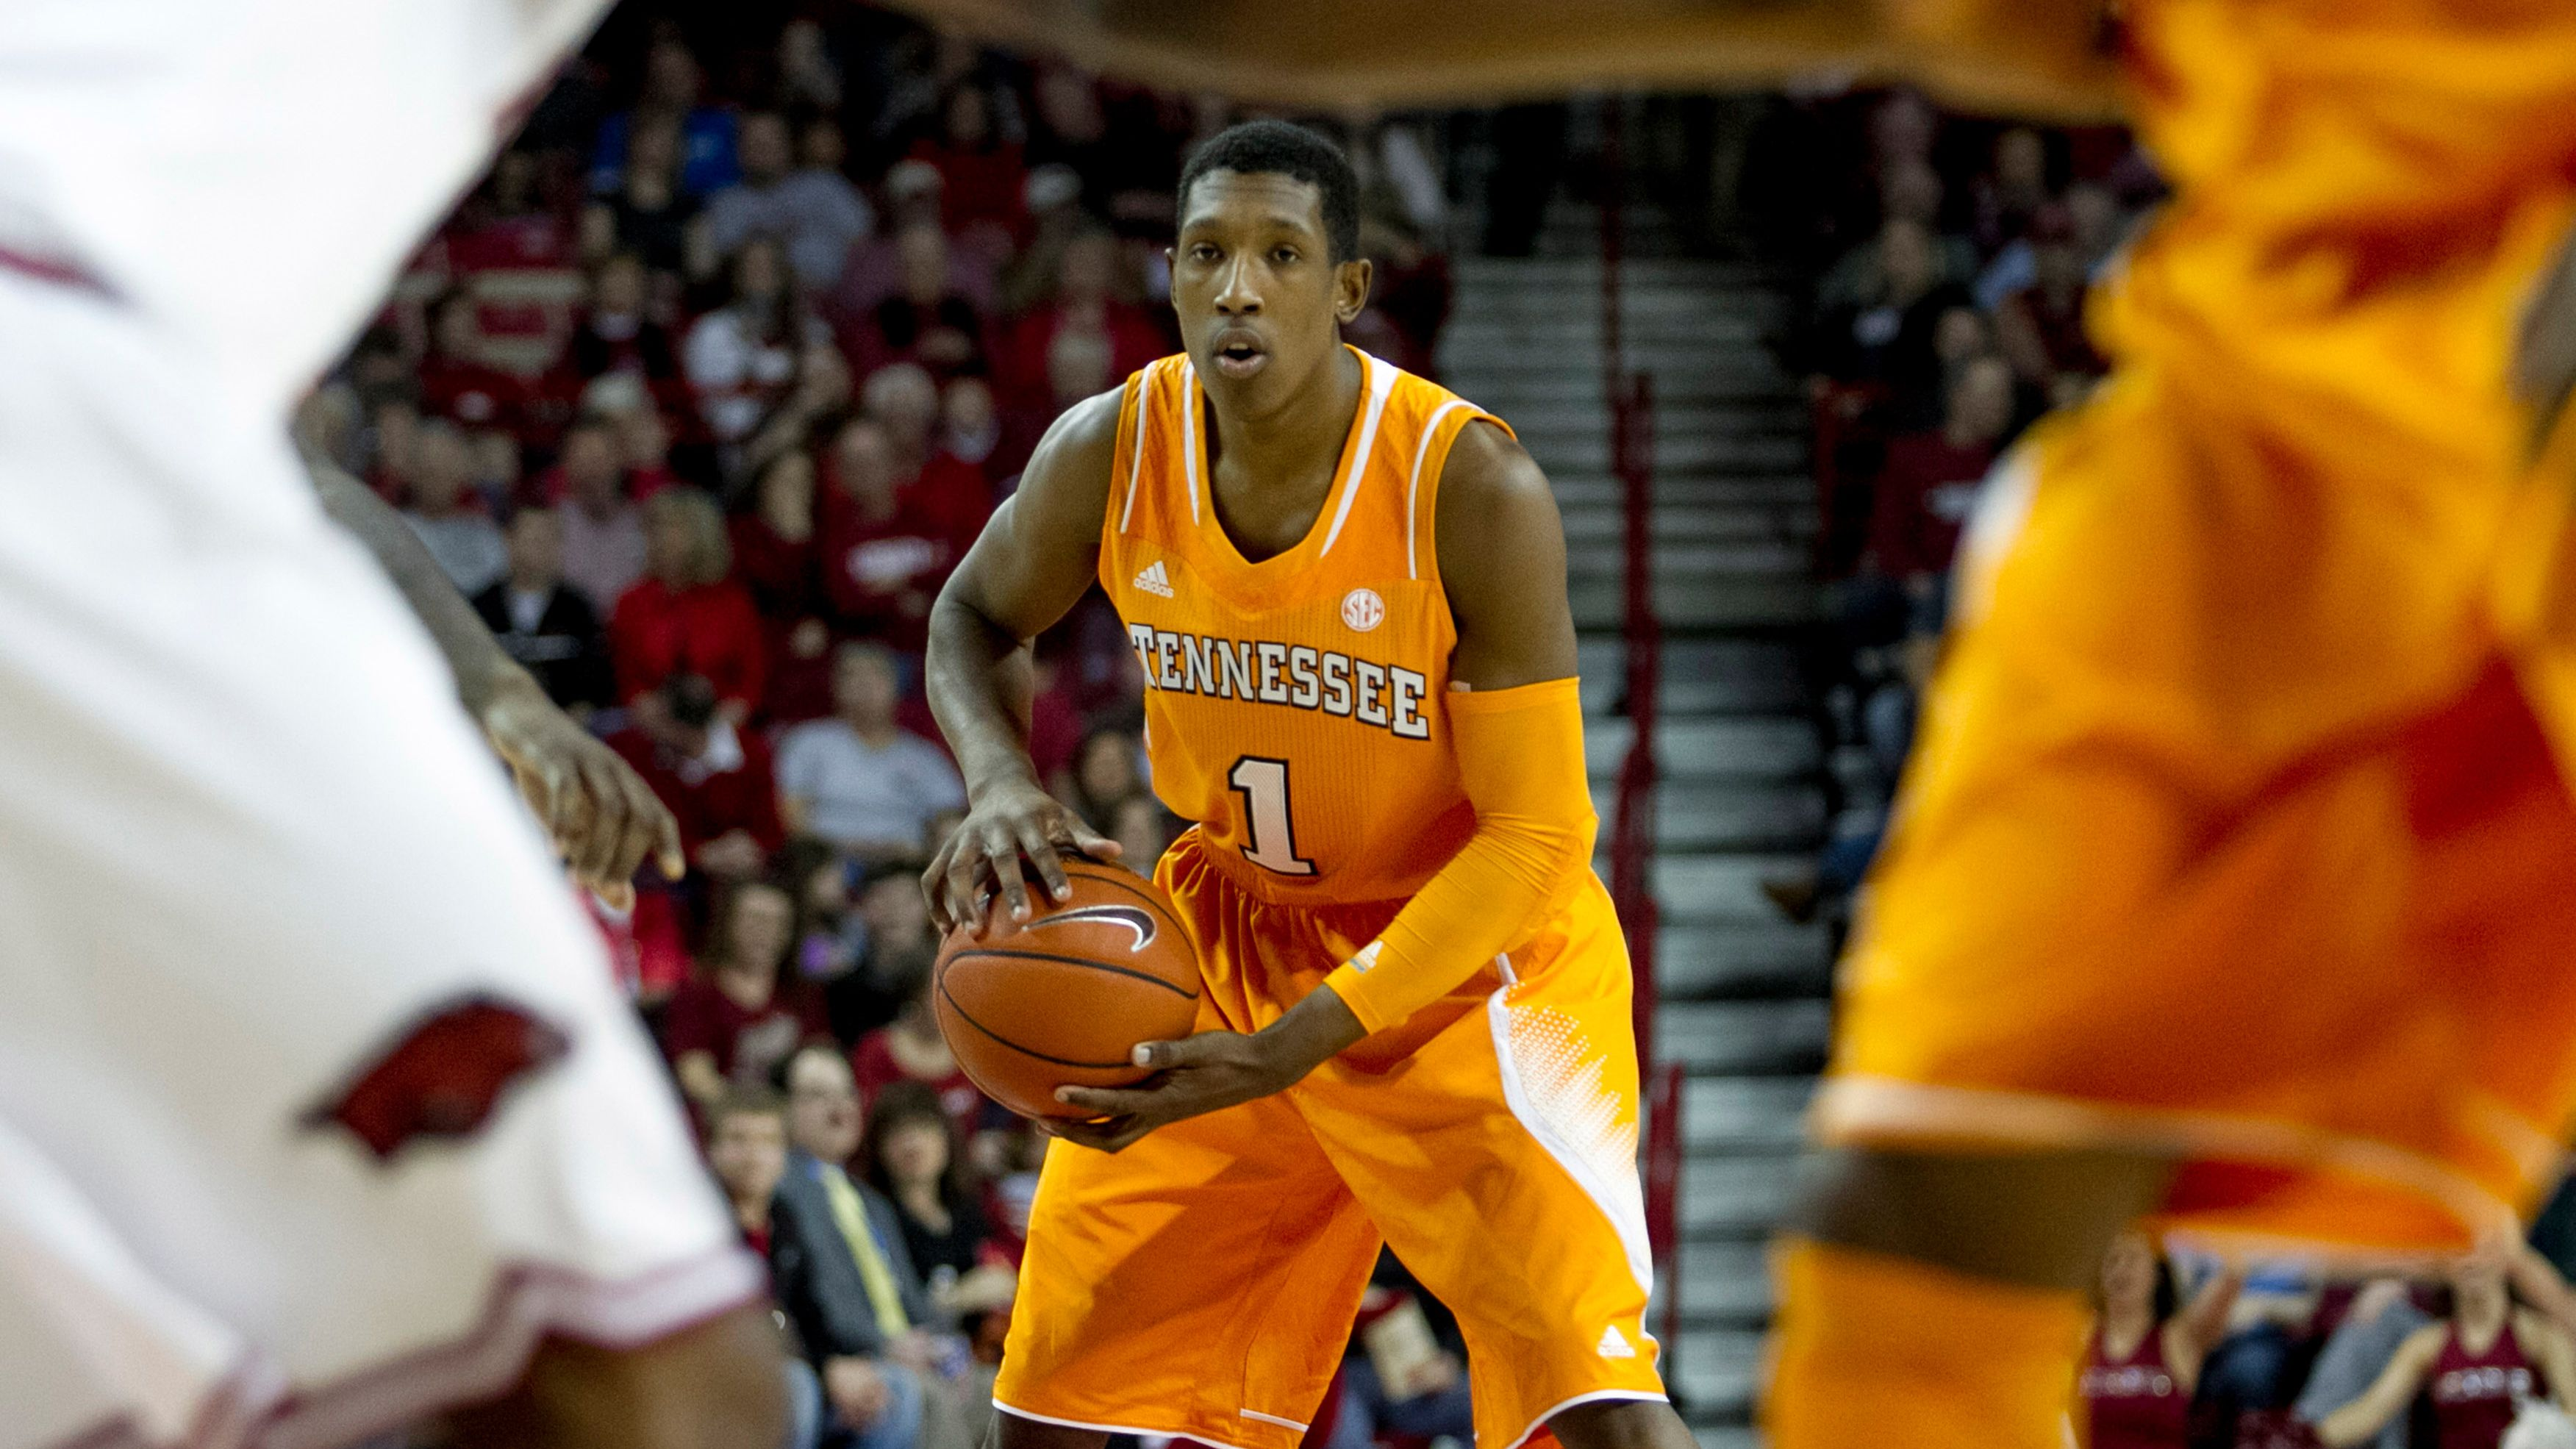 Pikeville College vs. Tennessee (M Basketball)